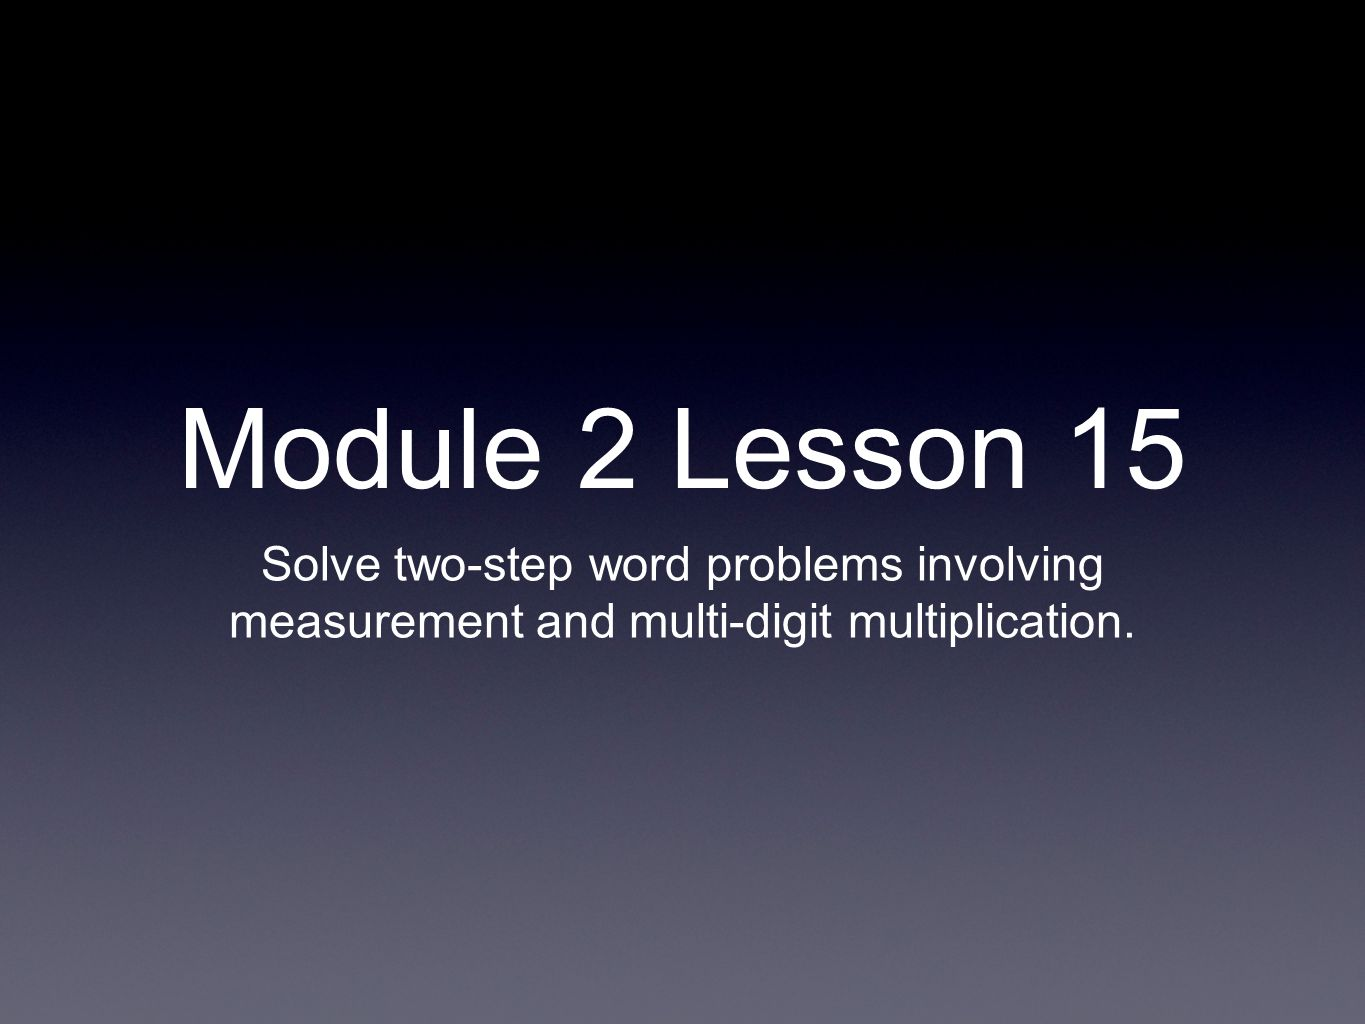 Module 2 Lesson 15 Solve Two Step Word Problems Involving Measurement And Multi Digit